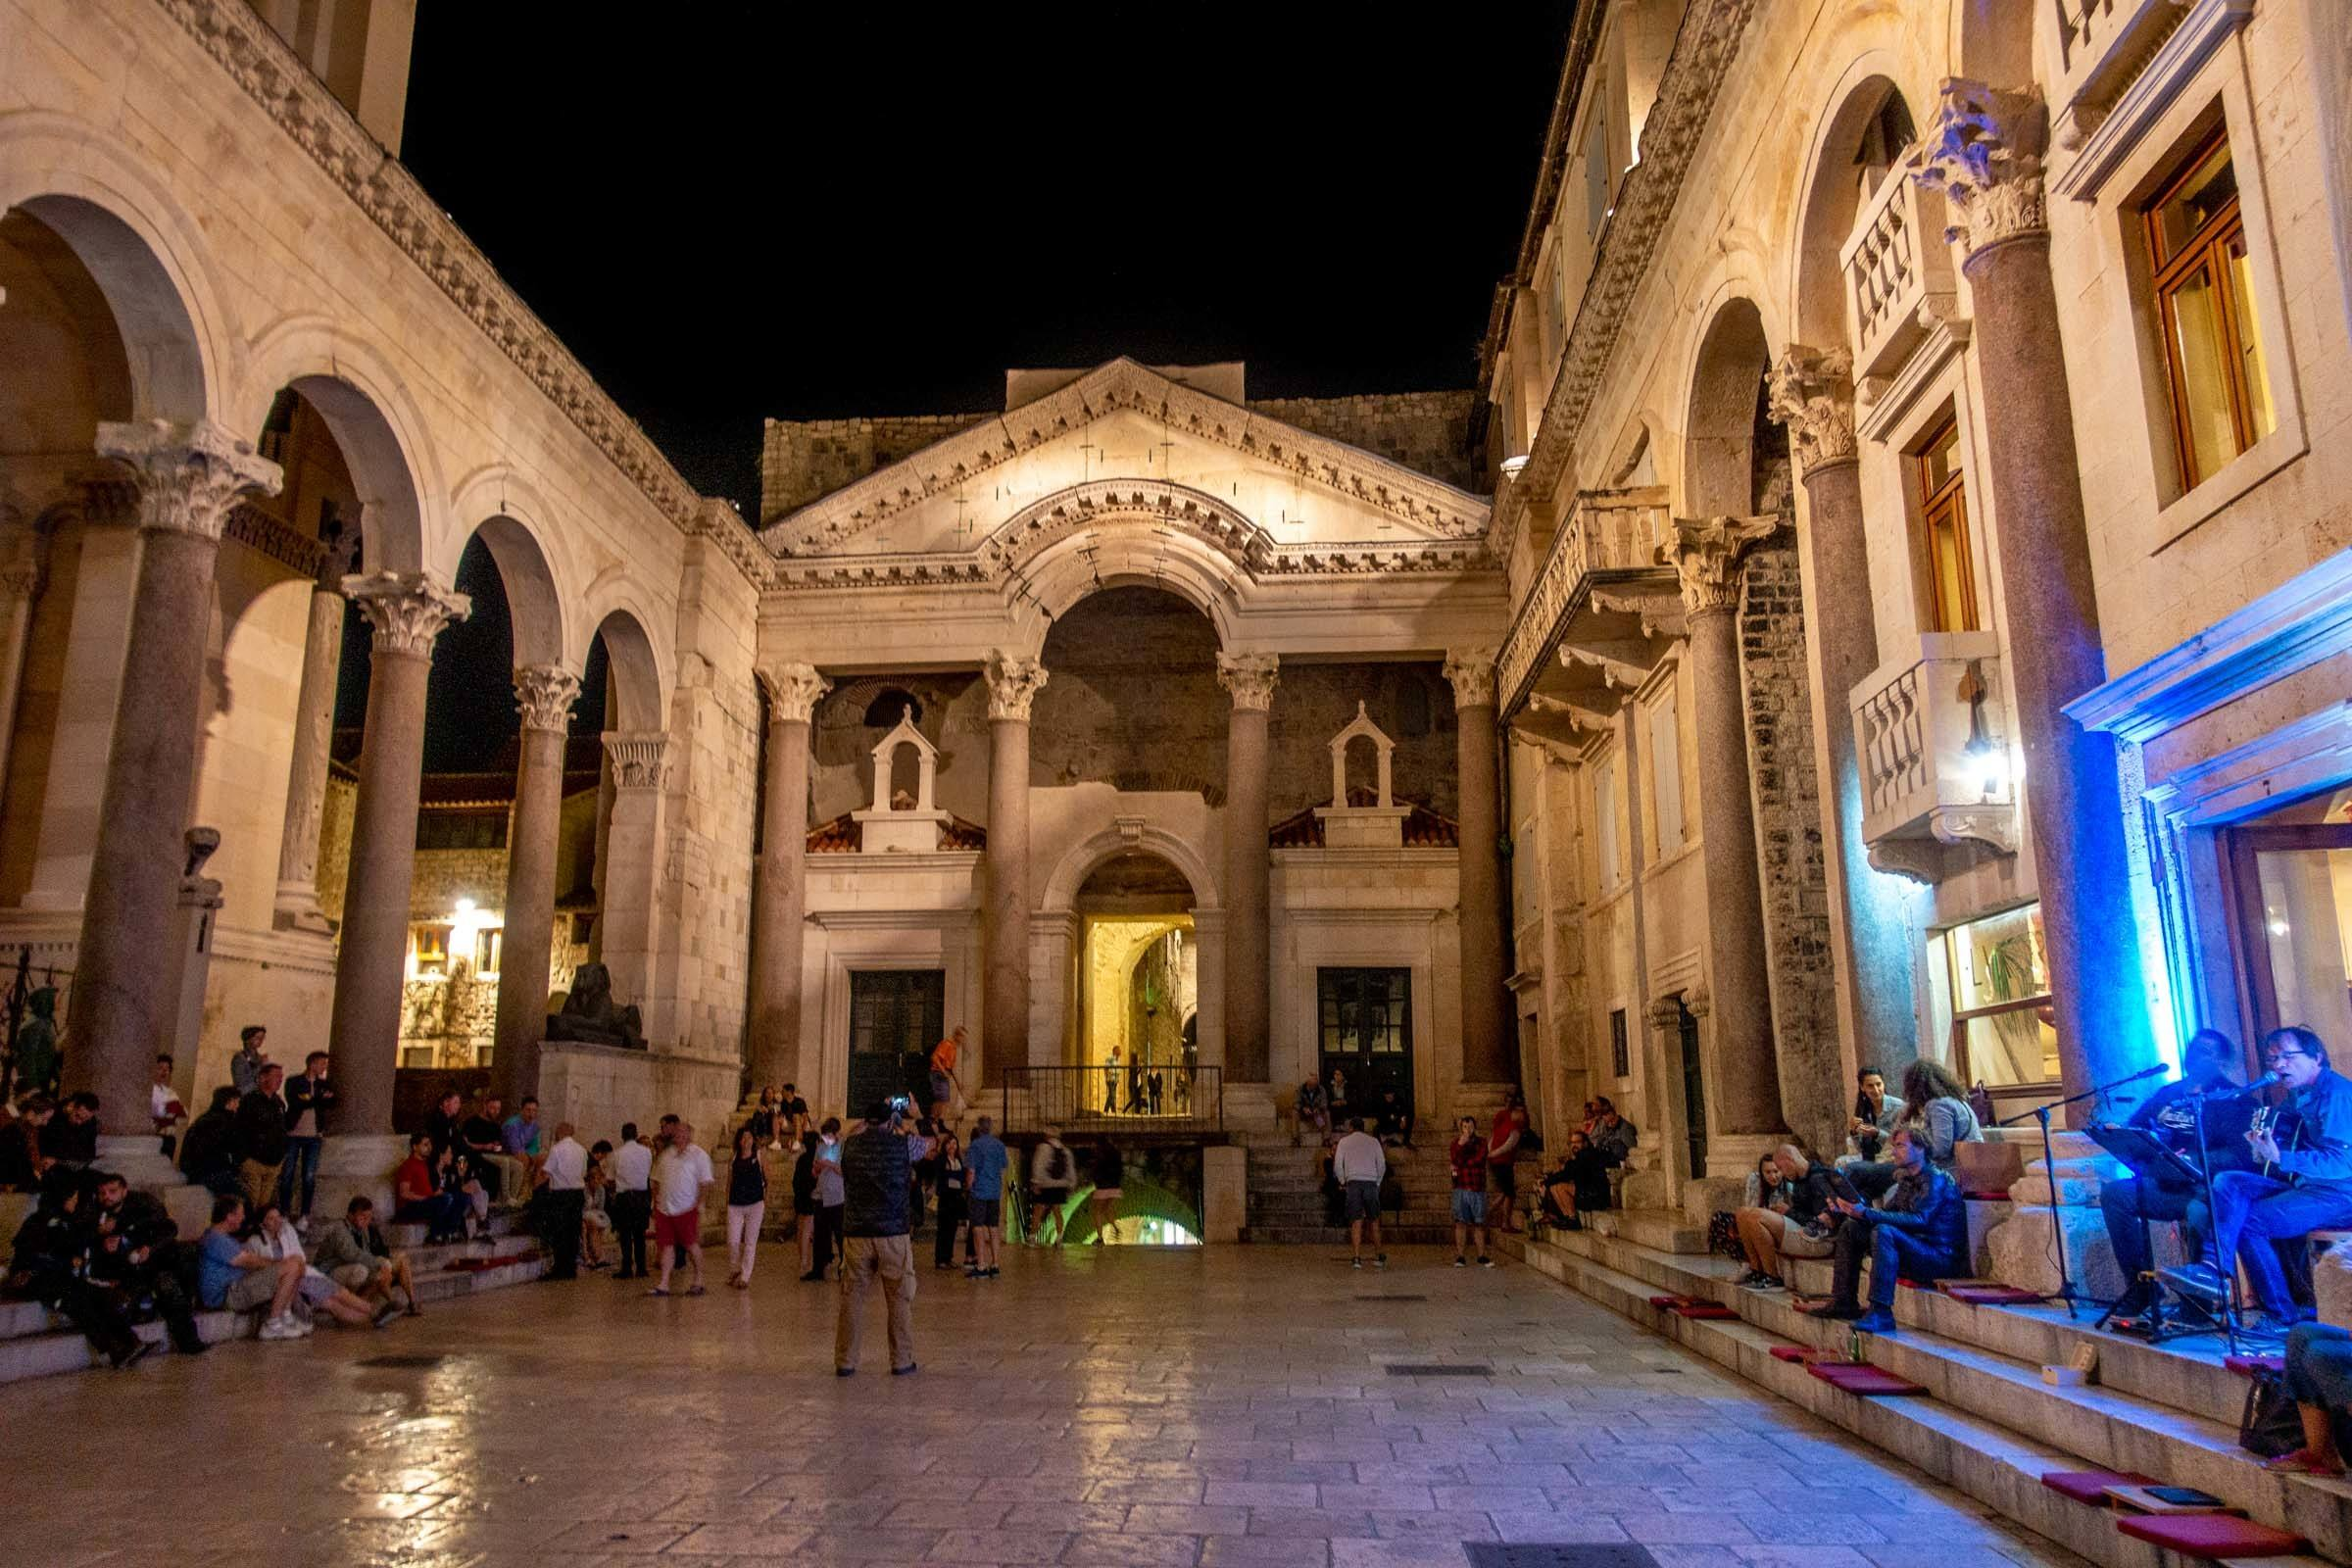 Marble peristyle (courtyard) of 4th-century Diocletian's Palace in Split, Croatia filled with people at night